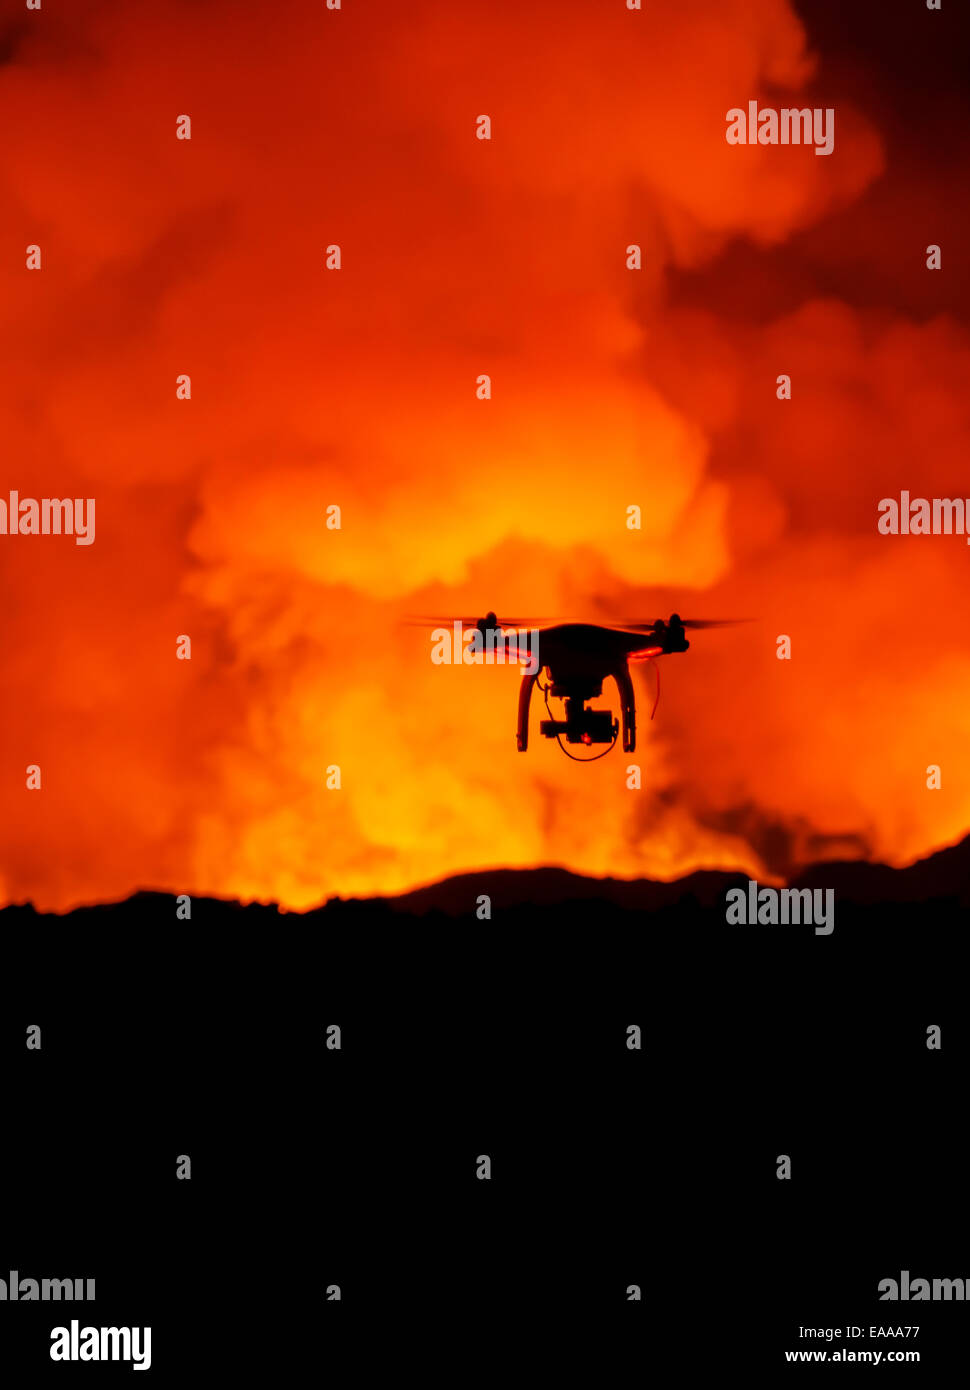 DJI Phantom 2 with GoPro, flying by the Holuhraun Fissure Eruption. - Stock Image